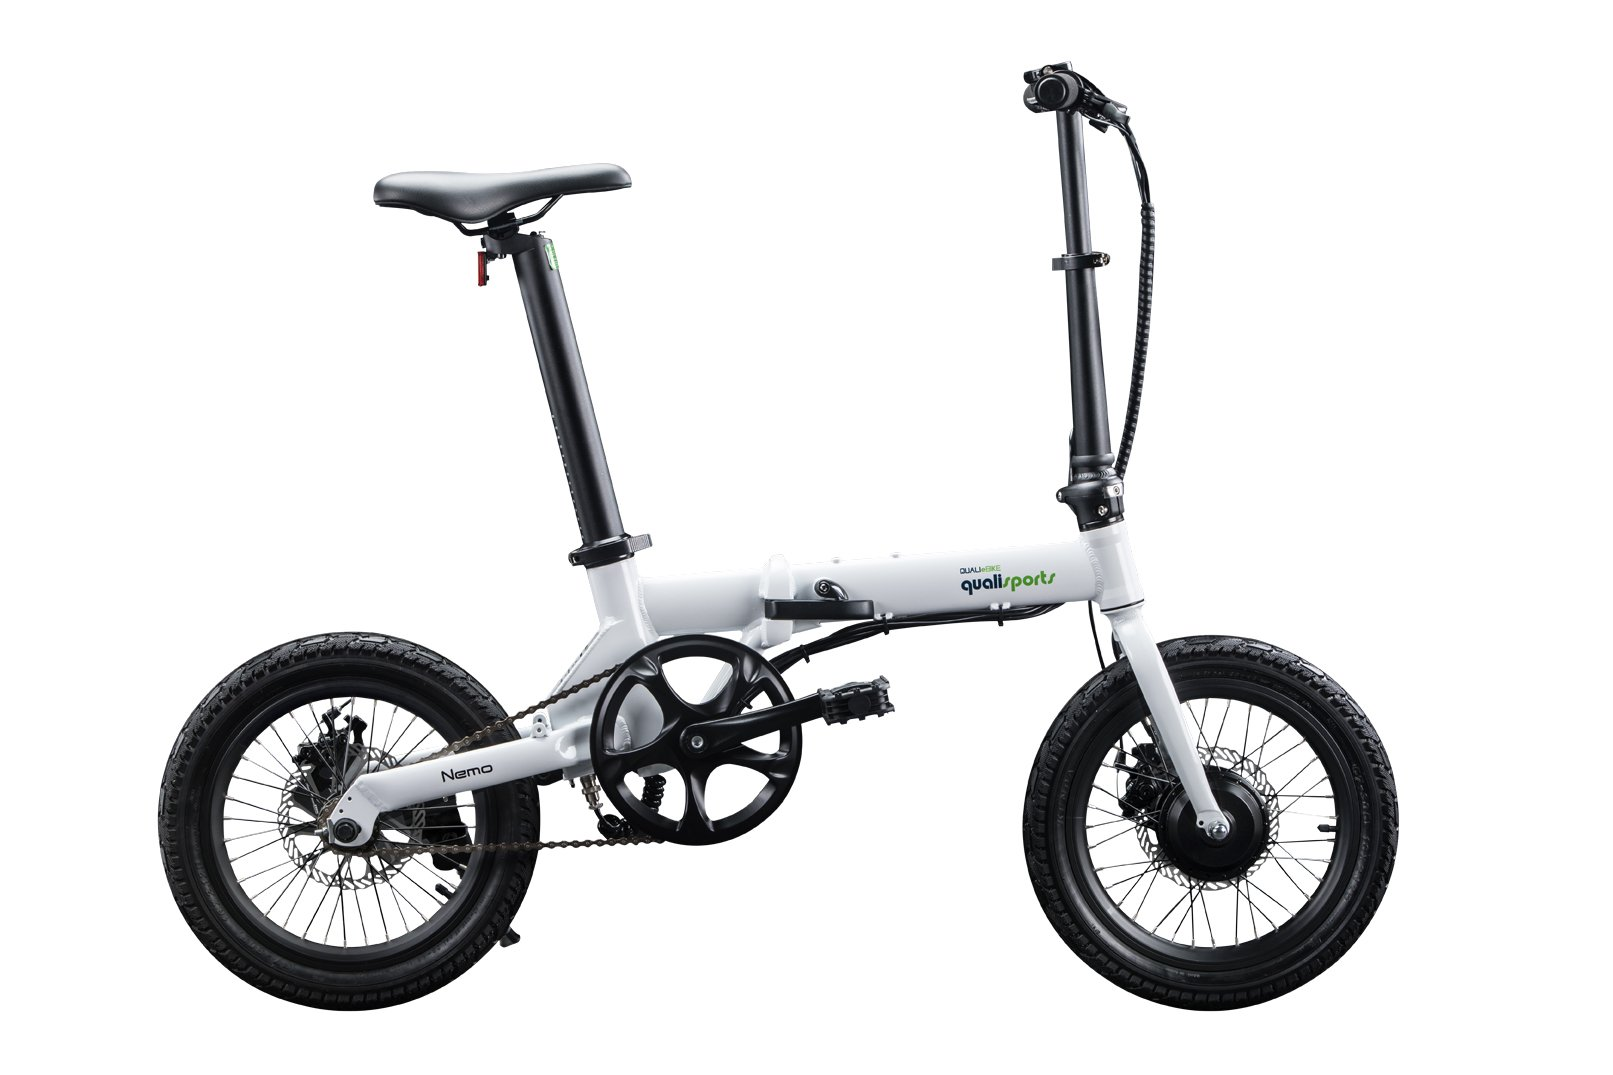 "Qualisports Nemo - 16"" Folding Electric Bike Black/White $899   ""NEMO"" is a super light 16 inch folding Electric Bike, which only weighs 30lbs.  It conveniently folds down to 30.7"" x 12.2"" x 22.8"" for easy storage.  Quali-bikers can easily store them in tight out of the way places in apartments, closets, under your work desk, in an RV, a boat or even on your own plane. The NEMO features an easy to read on-board multifunctional LCD display.  You can ride the NEMO in four different modes:  As a normal bike, (PAS) Pedal assist mode, Cruise control mode, or enjoy an effortless riding experience with a simple trigger throttle mode for getting over help over the climb.  The NEMO is powered by a 250W brushless geared motor, a FOC controller interface, which gives our out E-bikes smooth acceleration and less drag making this a perfect bike for smaller commutes.  Our patented seat post battery system (Samsung 252WH) is not only stylish and sleek, it also gives the NEMO a range of 30 miles on a single charge."